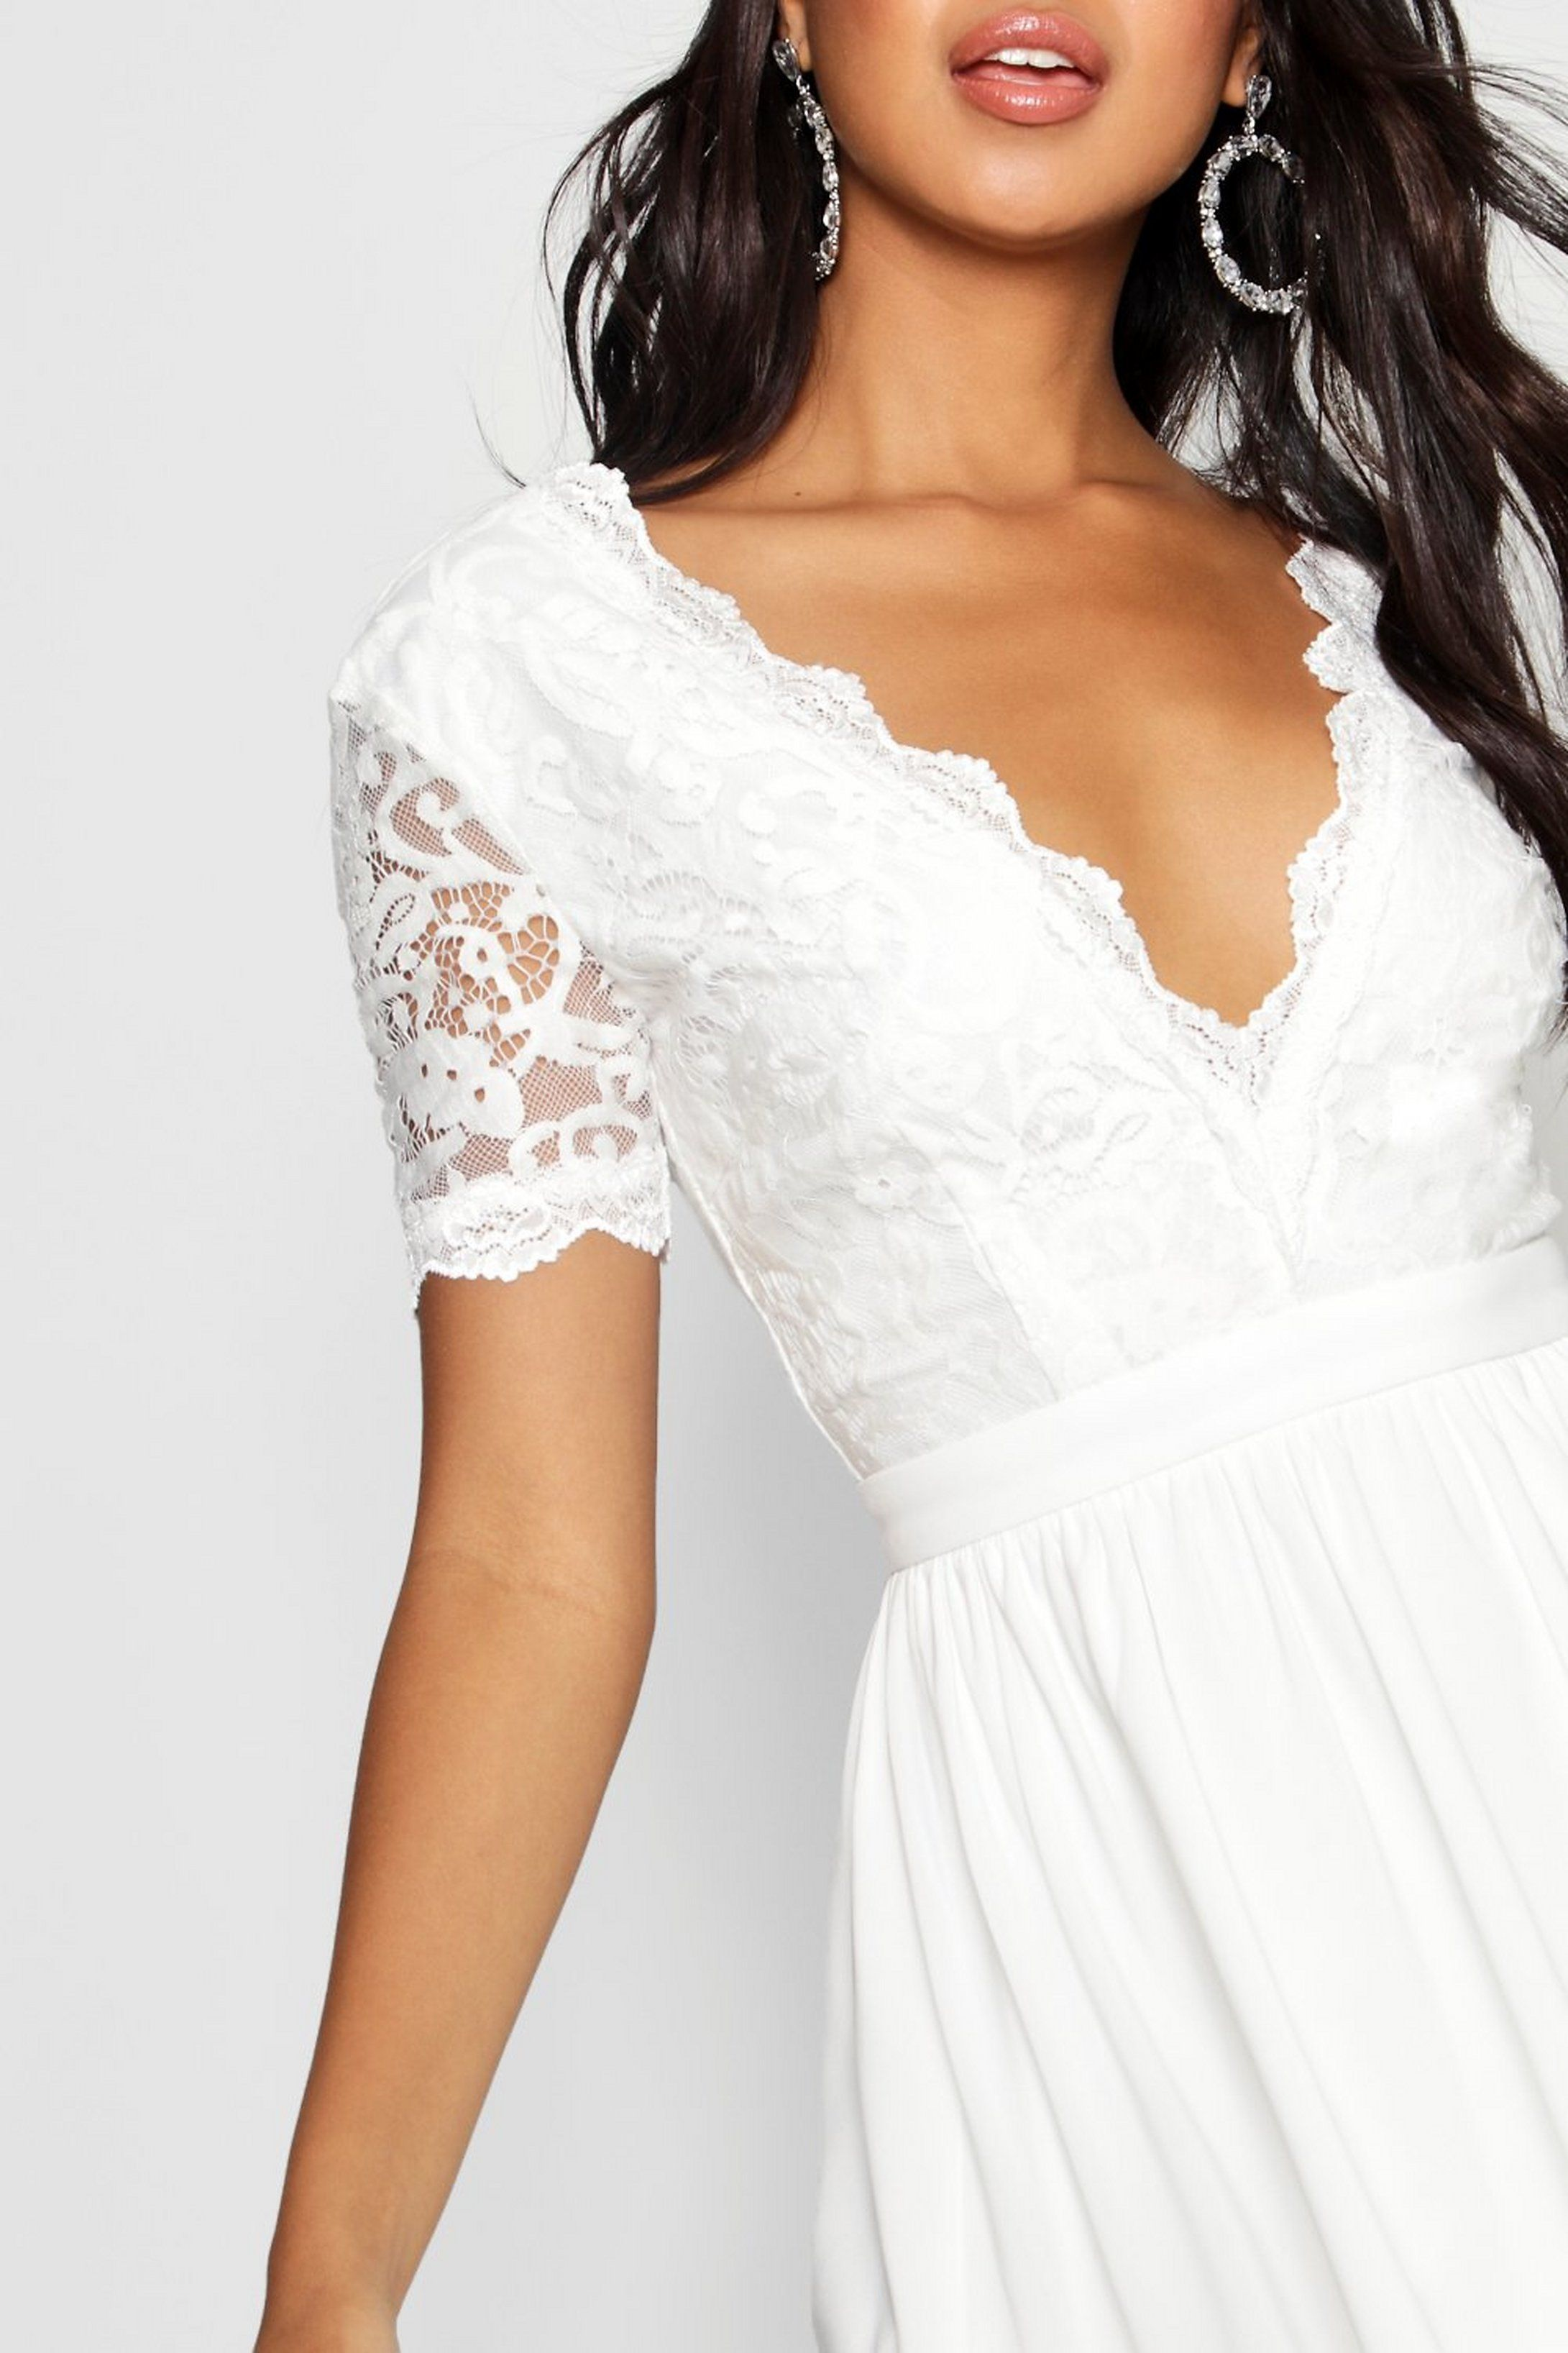 Lace Top Skater Dress Boohoo In 2020 Lace Top Skater Dress White Lace Dress Short Short Lace Dress [ 3272 x 2181 Pixel ]